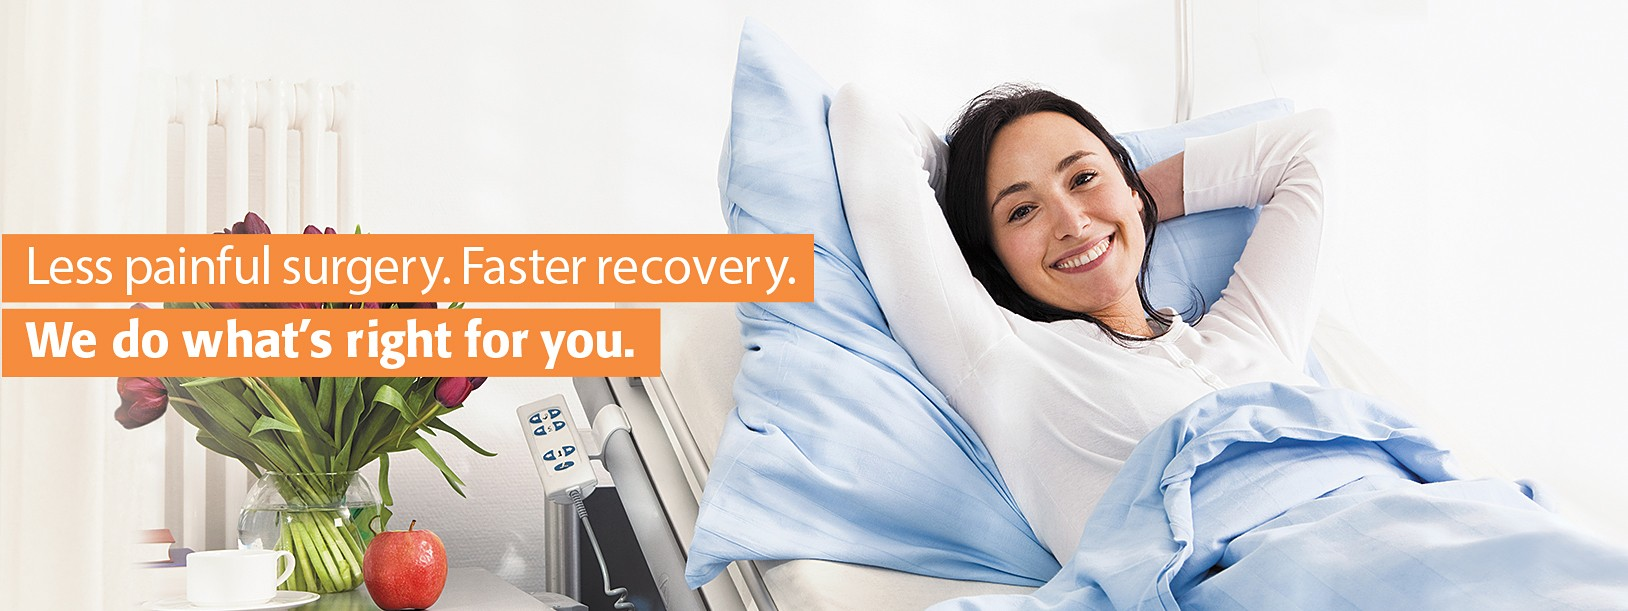 Less painful surgery. Faster recovery. We do what's right for you